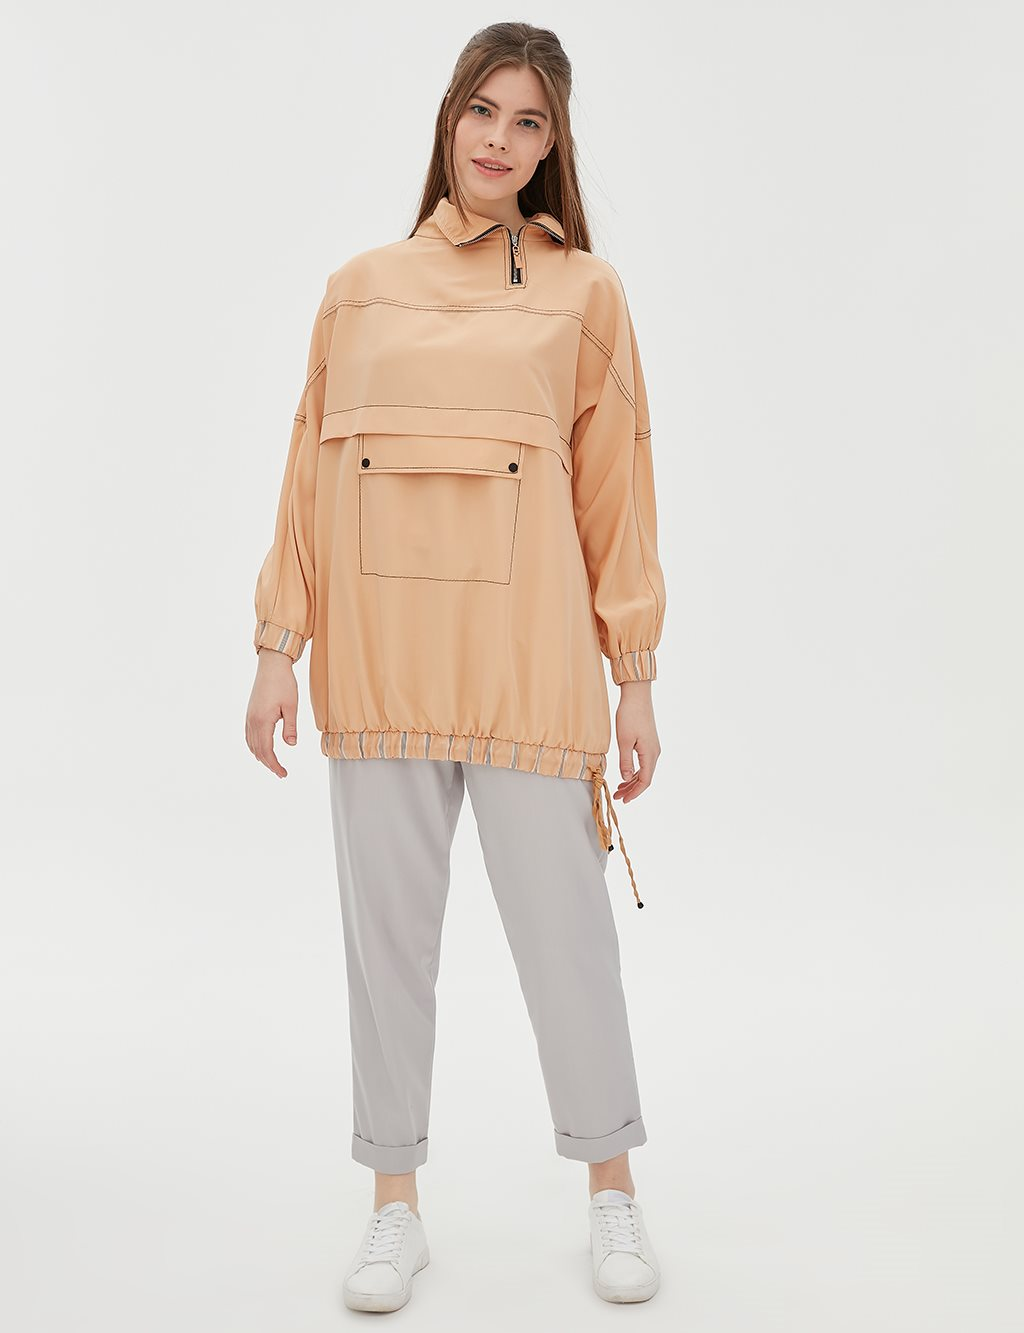 Ruched Tunic B20 21056 Beige